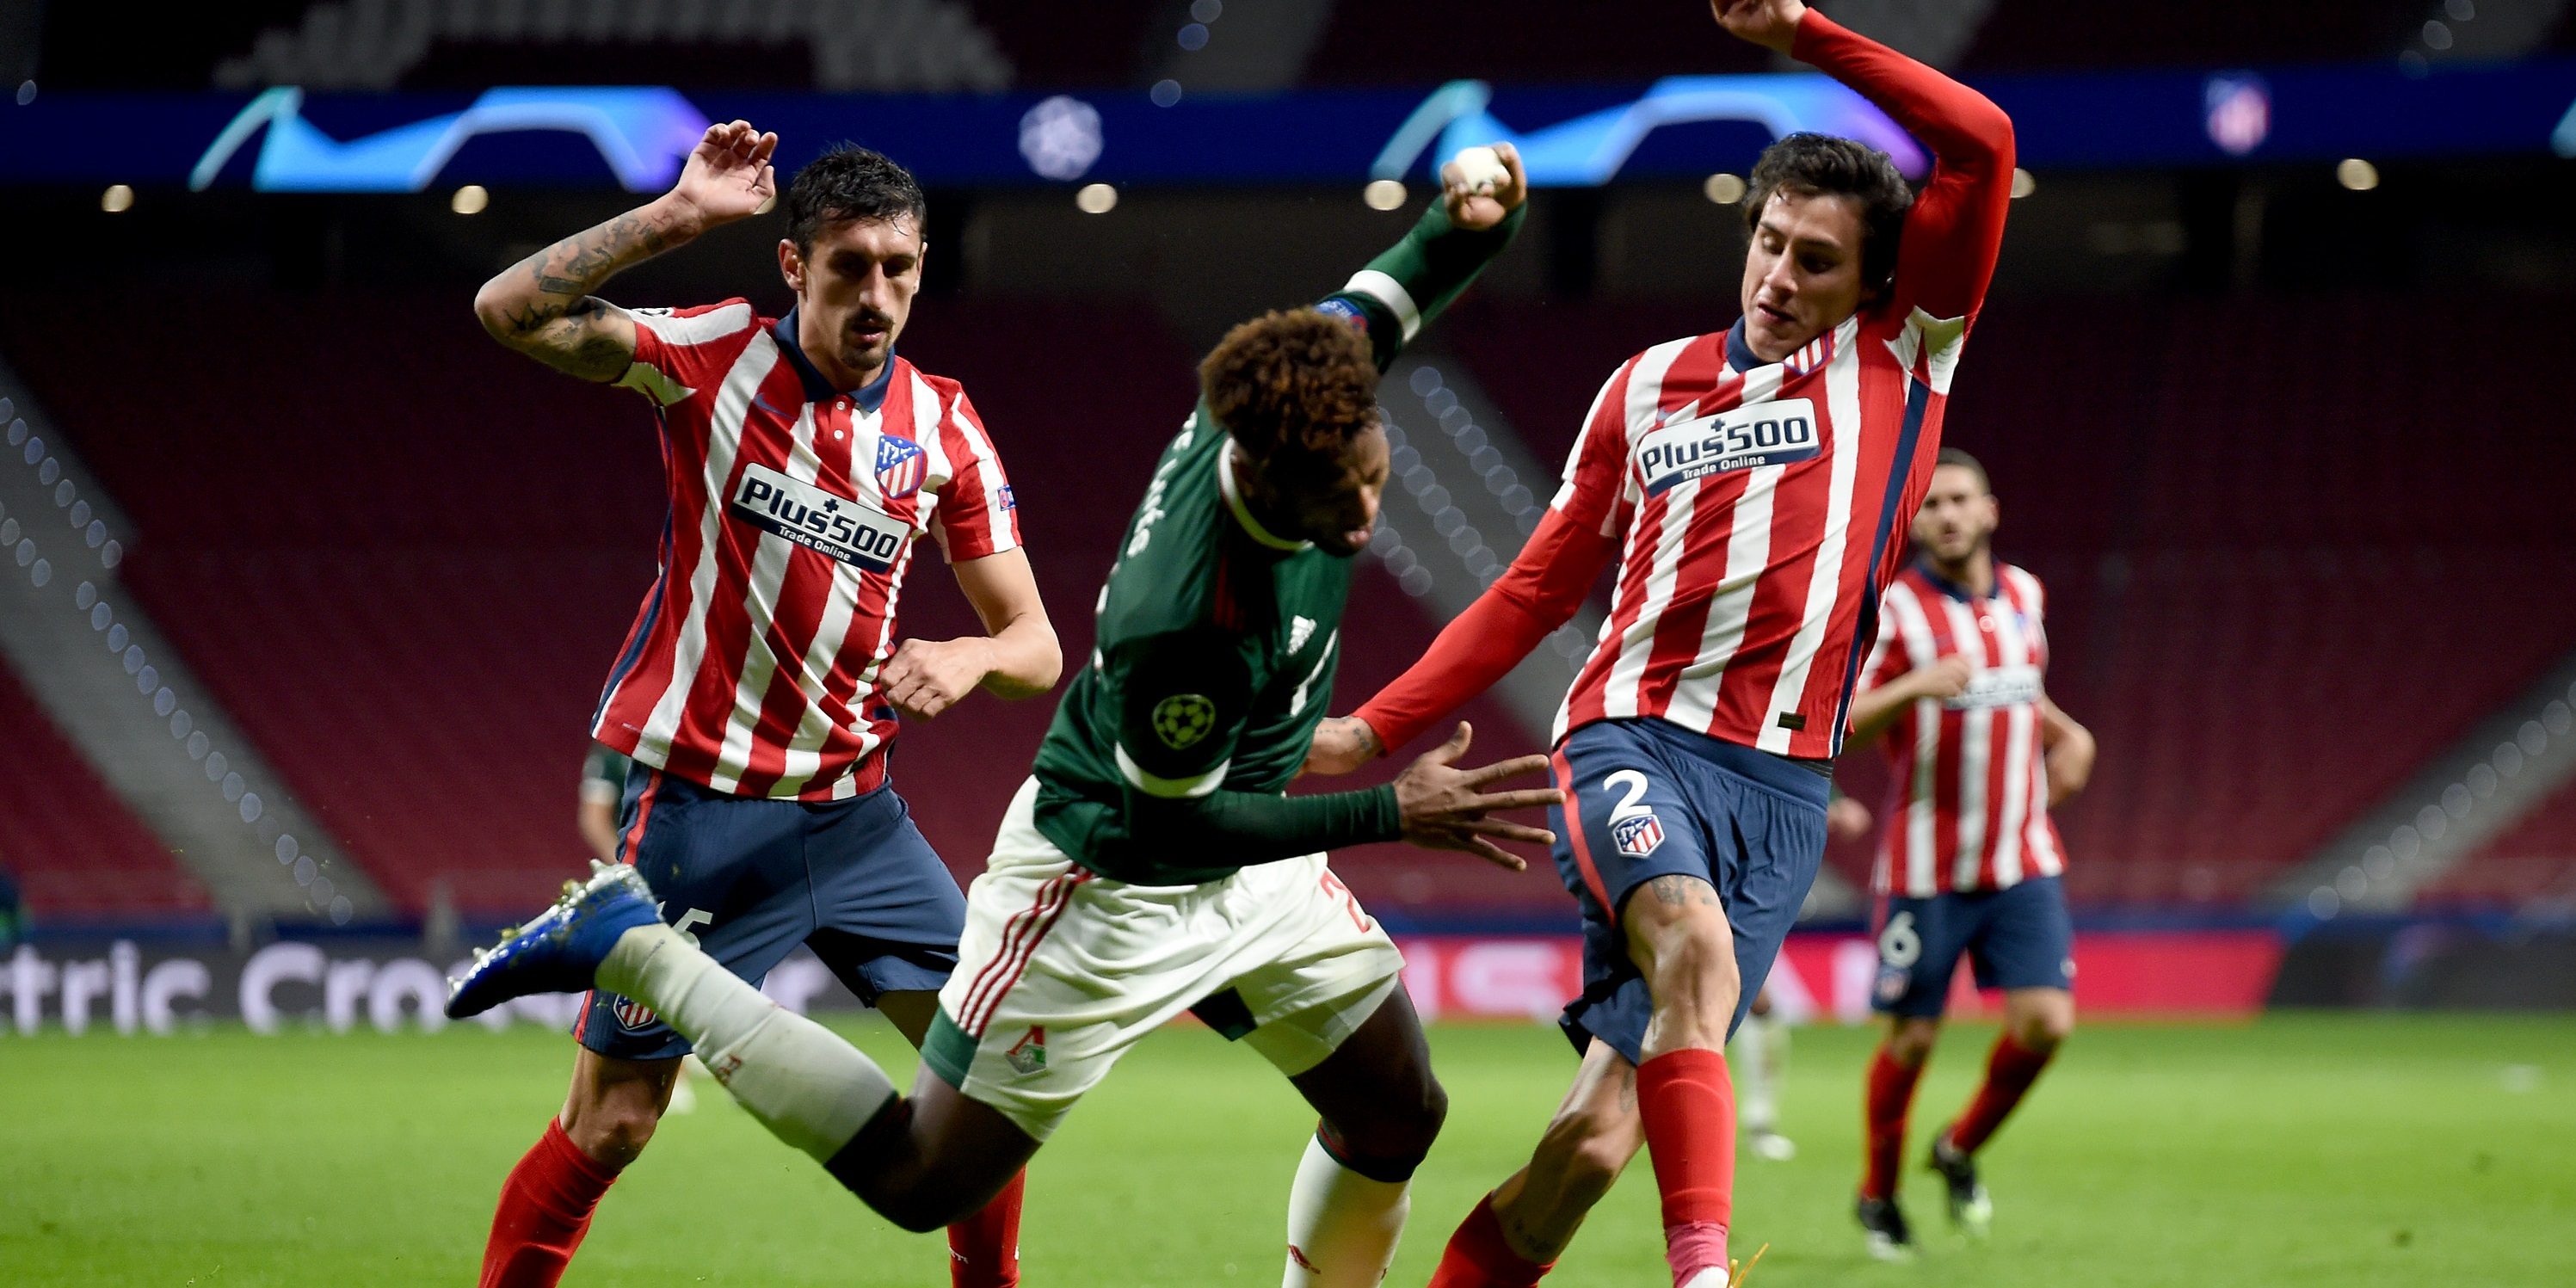 Atletico Madrid could be forced to utilise midfielder to solve defensive crisis ahead of Liverpool clash